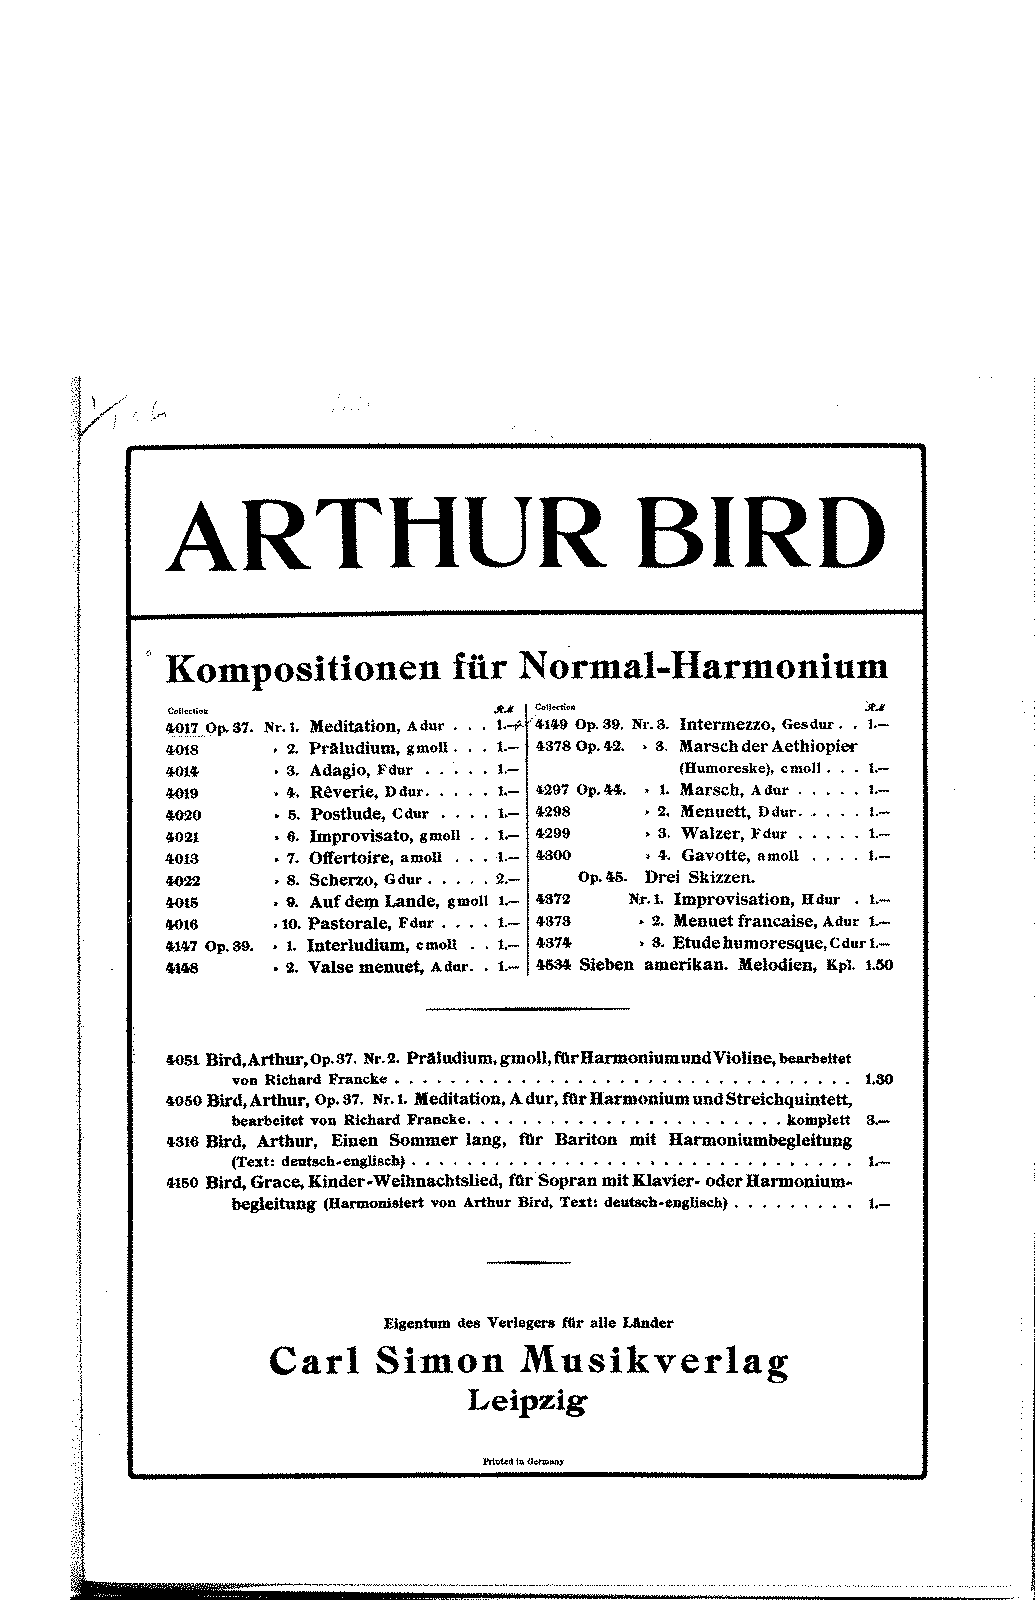 PMLP132781-Bird (Arthur) - 10 Pieces for Harmonium, op. 37.pdf